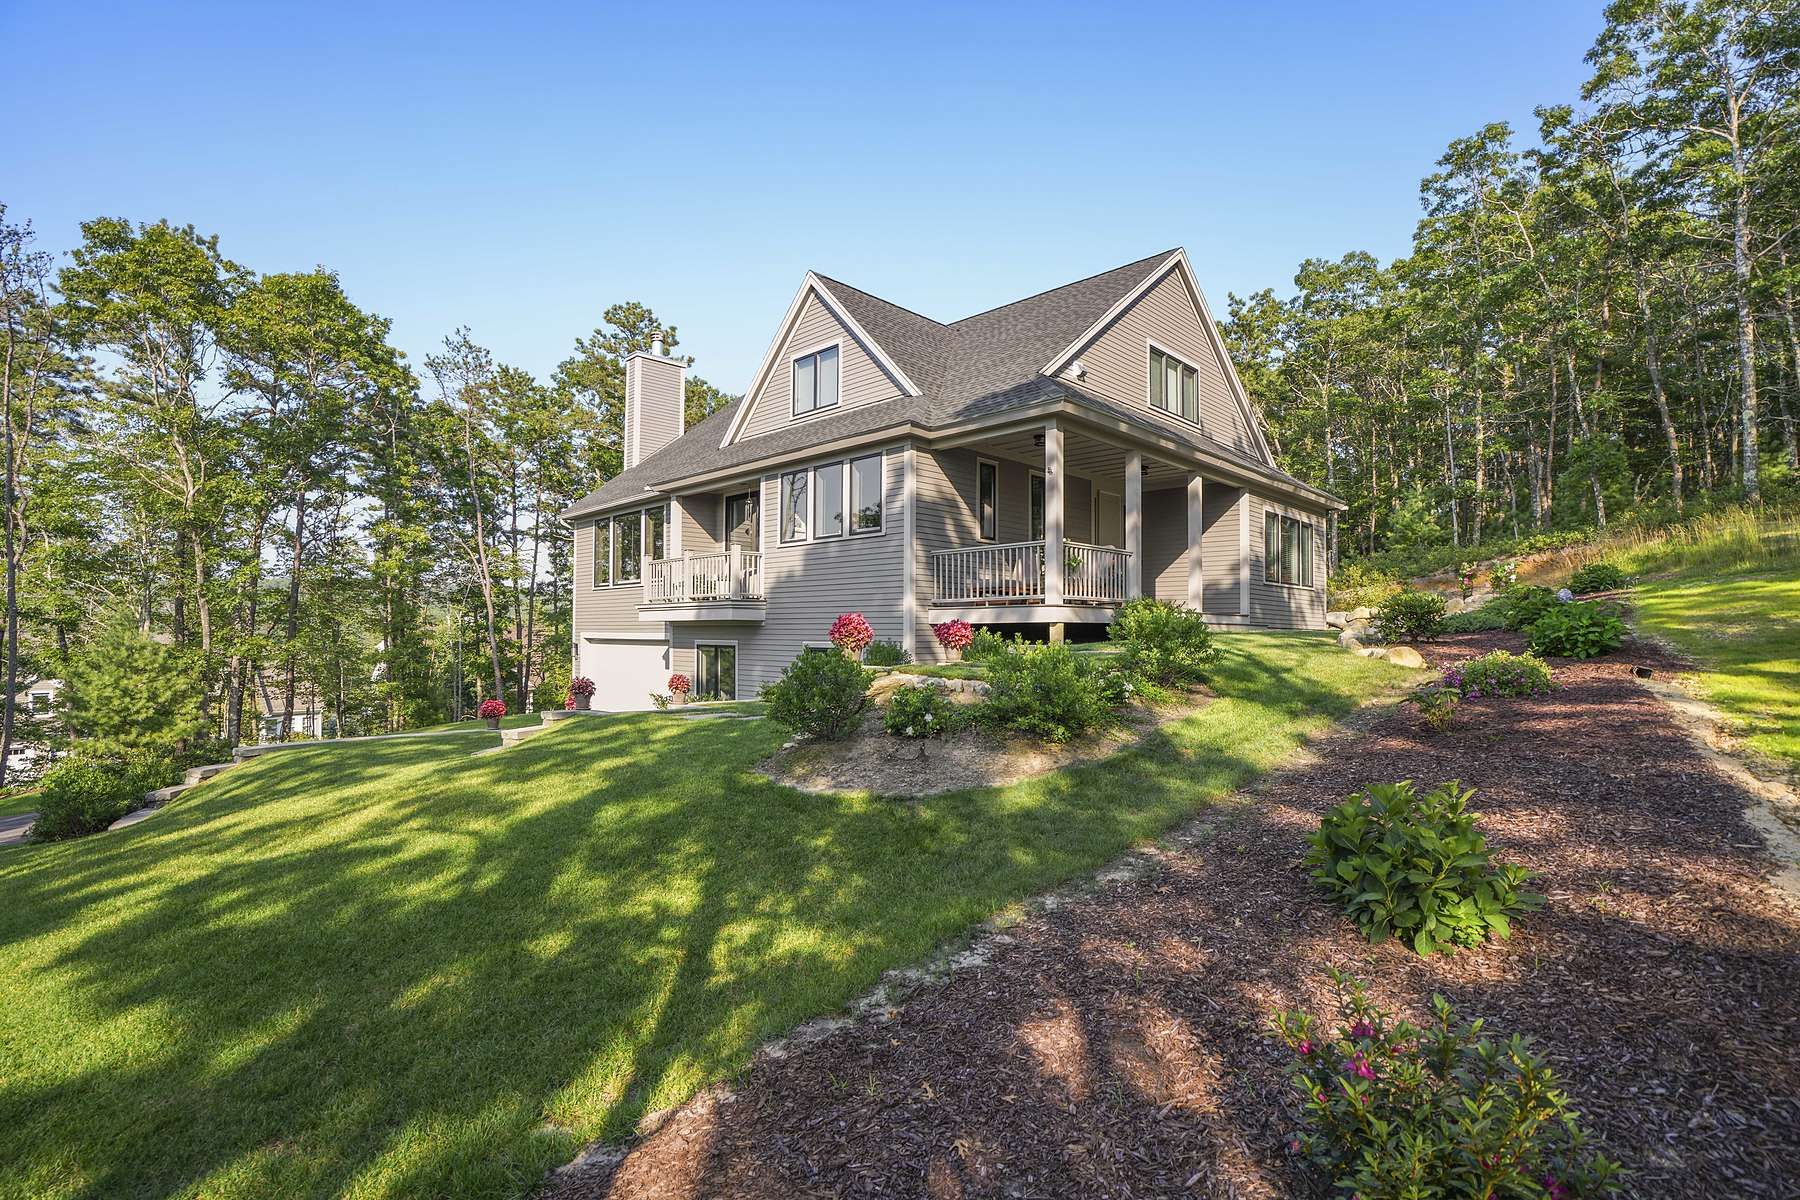 Single Family Homes for Sale at 3 Ridgeview Plymouth, Massachusetts 02360 United States